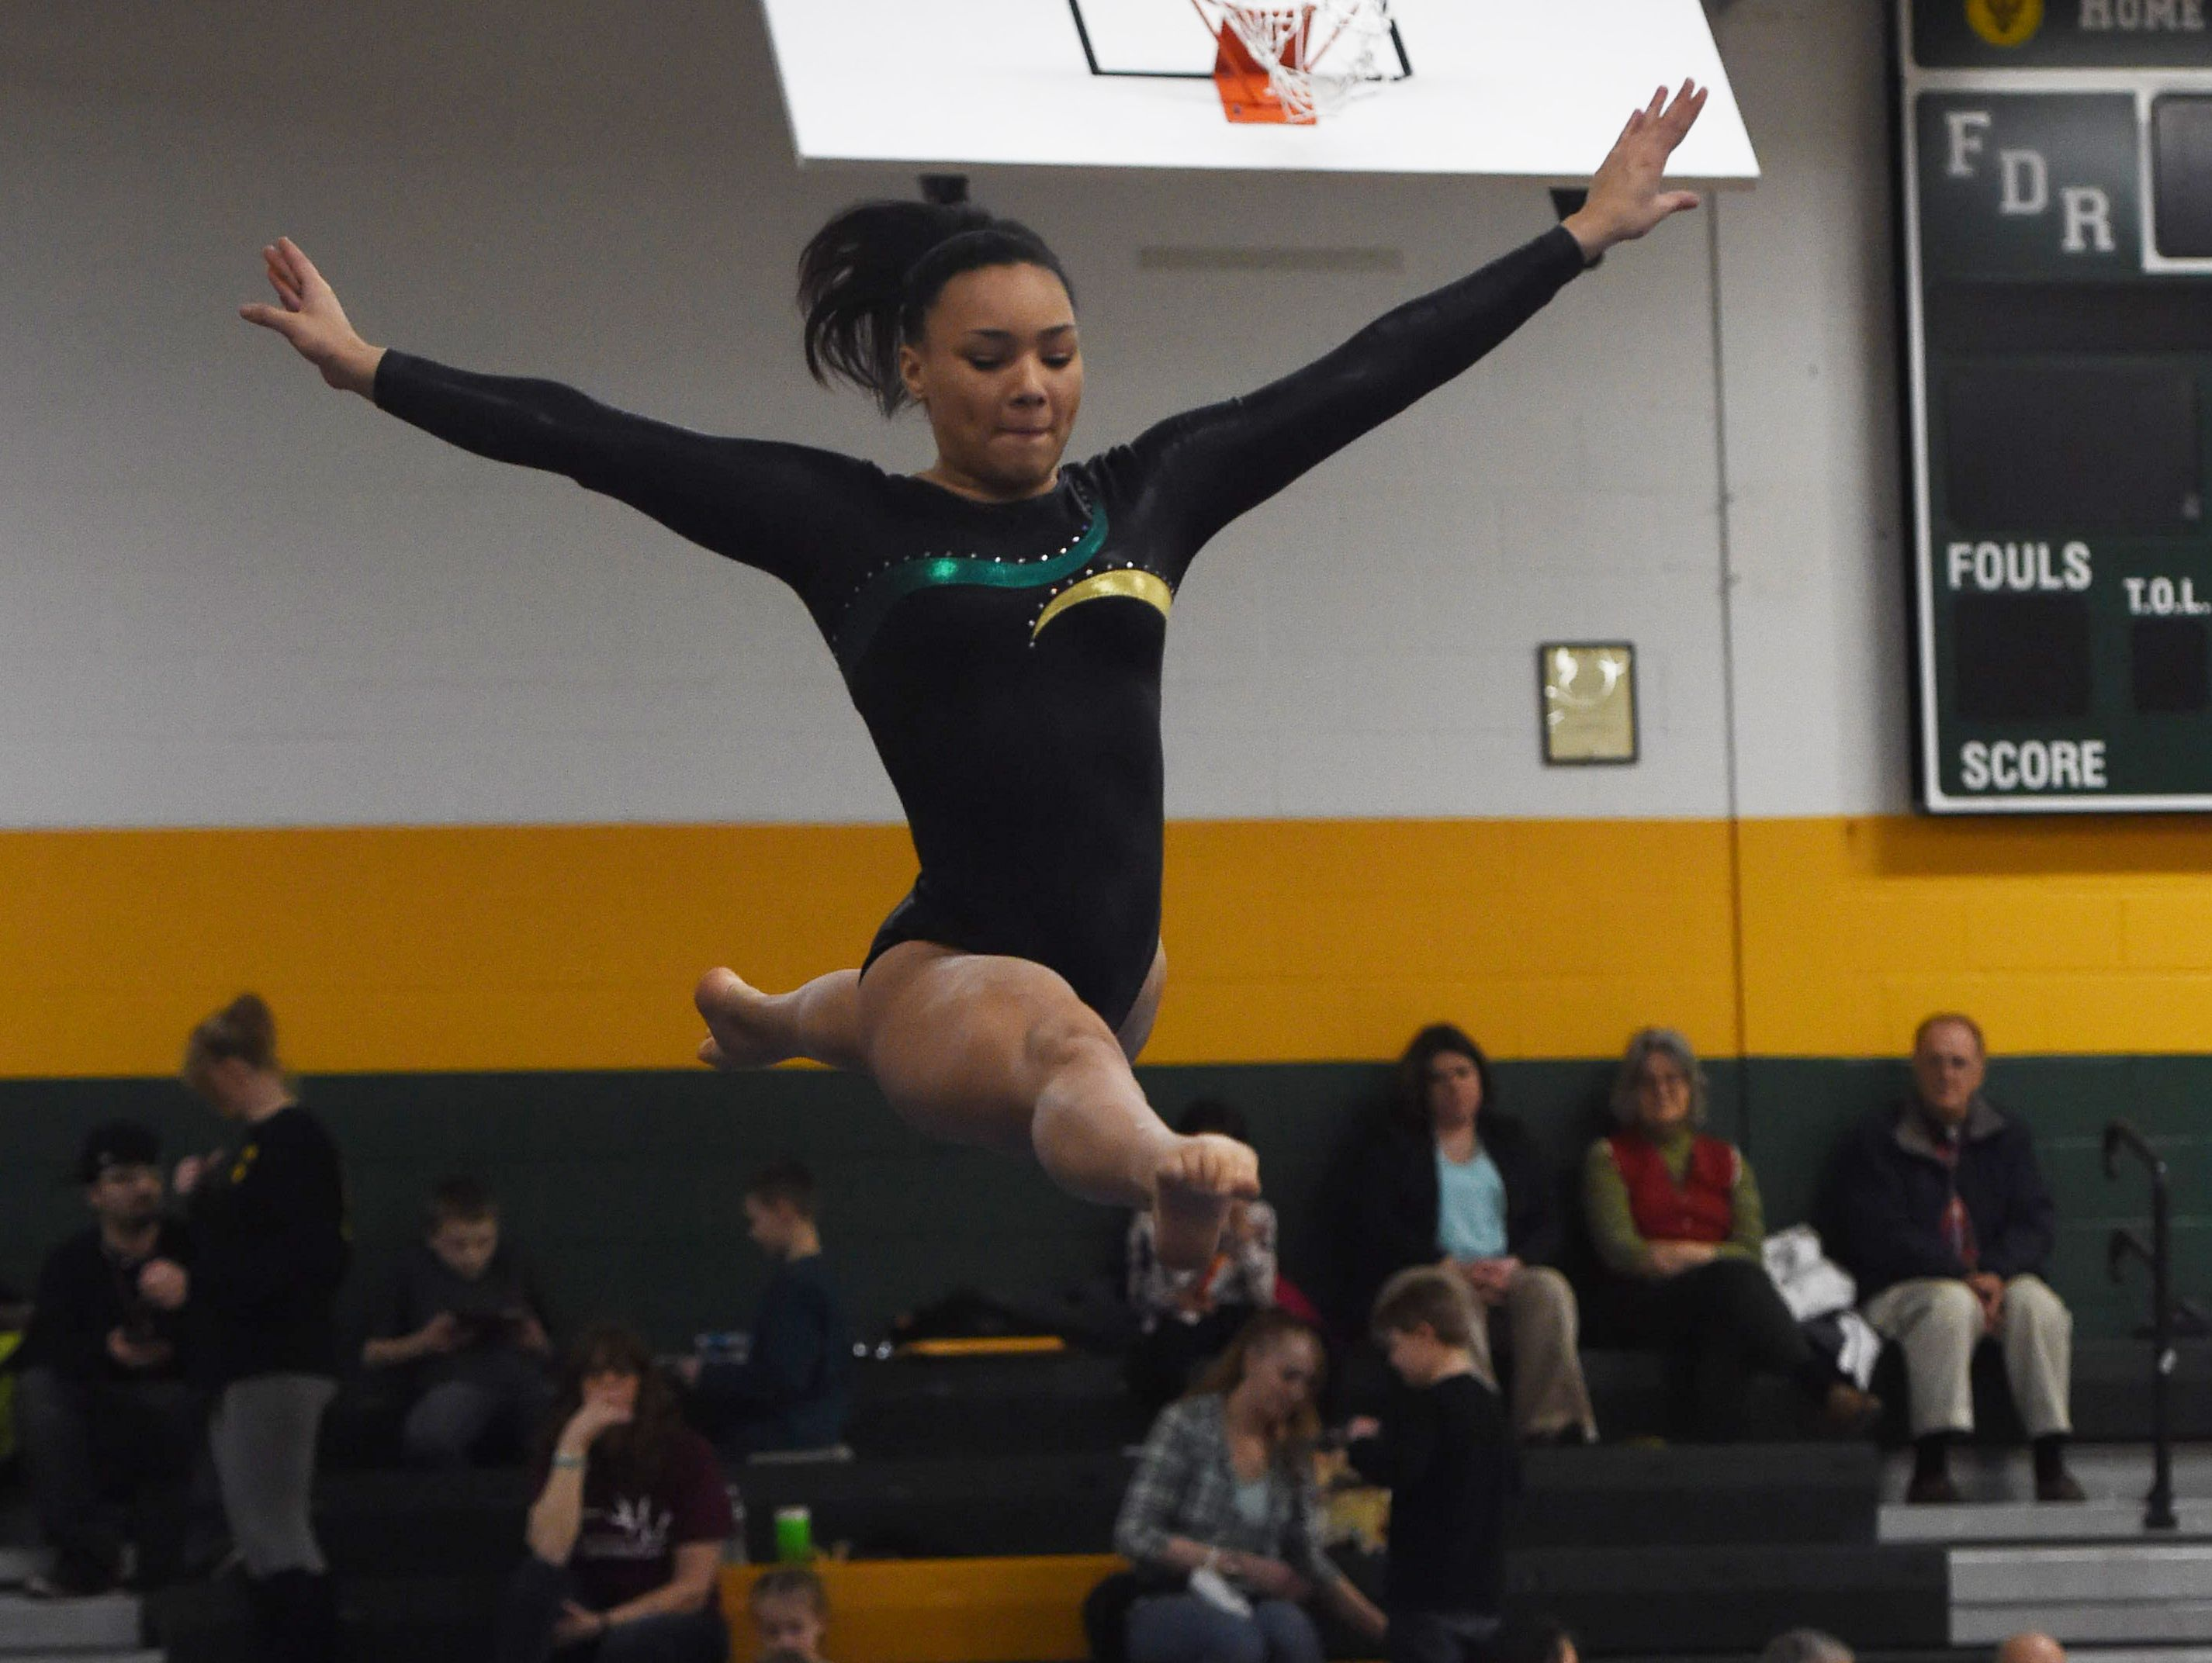 FDR's Dannika Bolitho performs her routine on the balance beam during the Katie Filiberti Memorial Gymnastics Invitational at FDR High School.